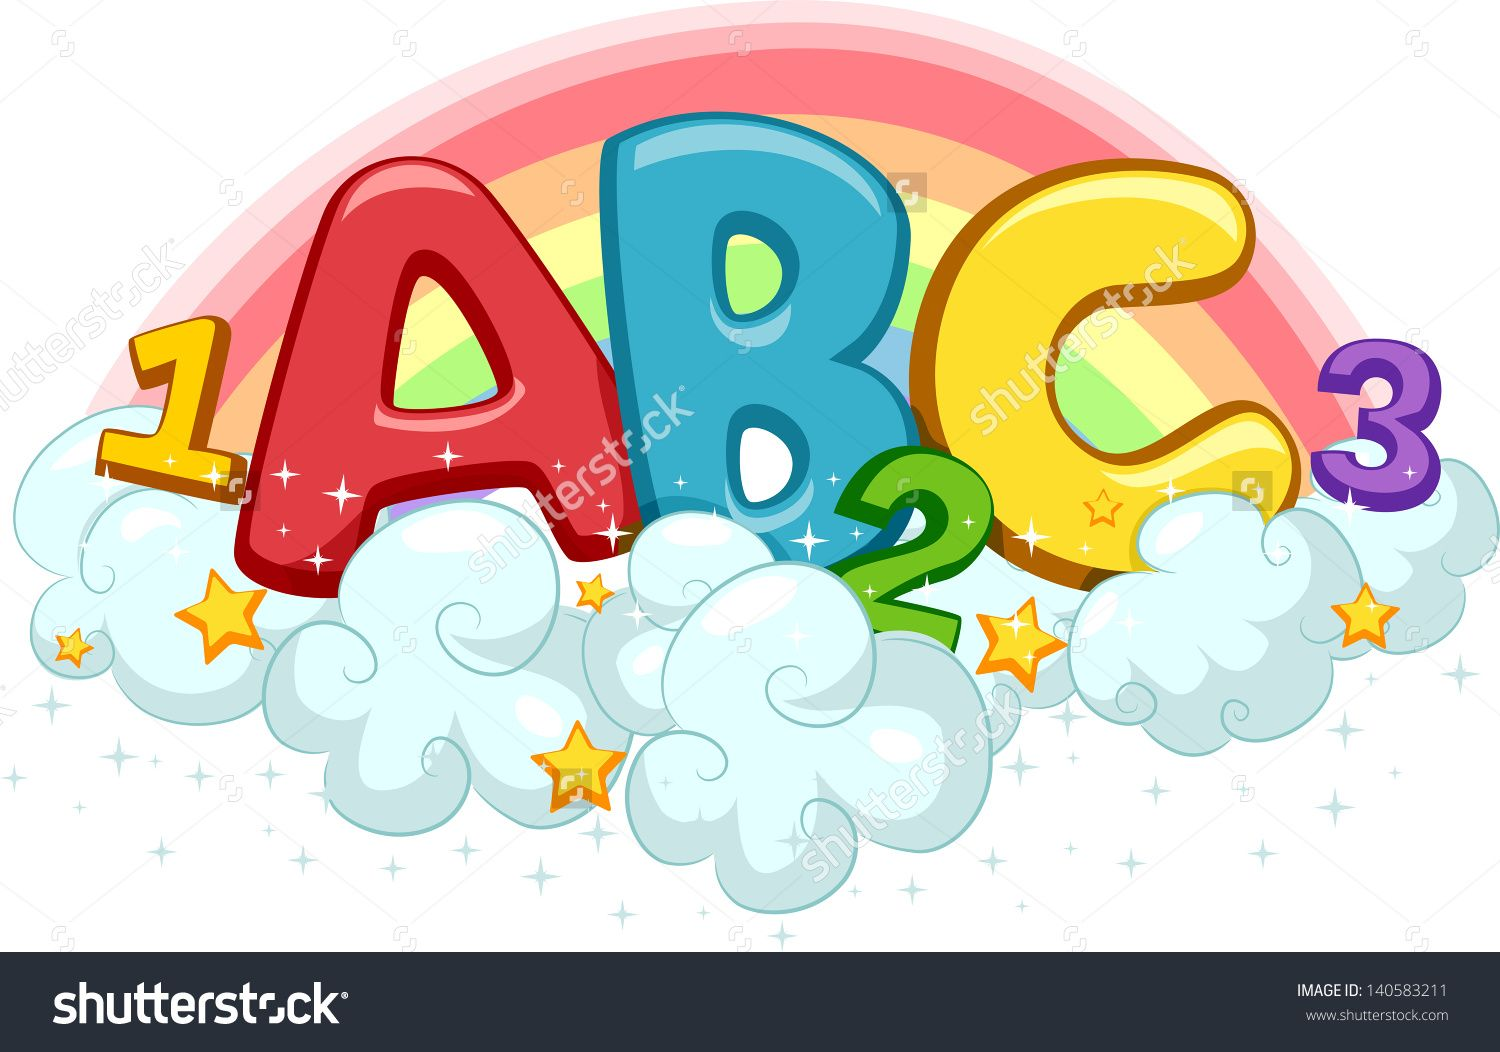 Illustration Of Abc And 123 On Clouds With Stars And Rainbow.